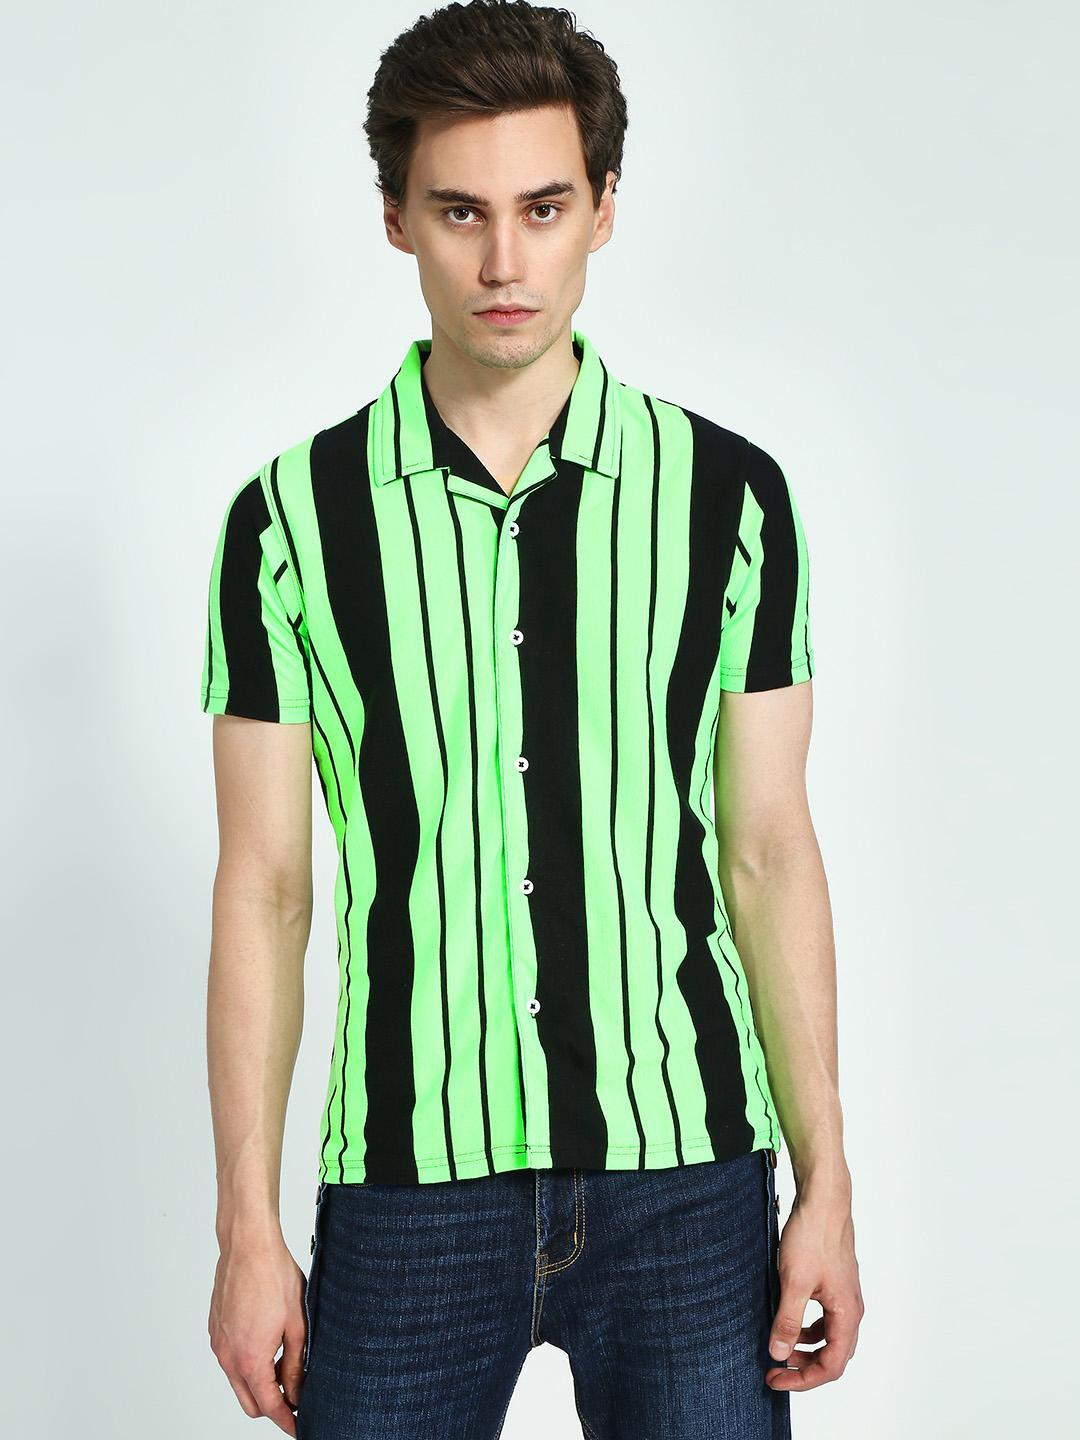 Garcon Green Yarn-Dyed Vertical Stripe Short Sleeve Shirt 1